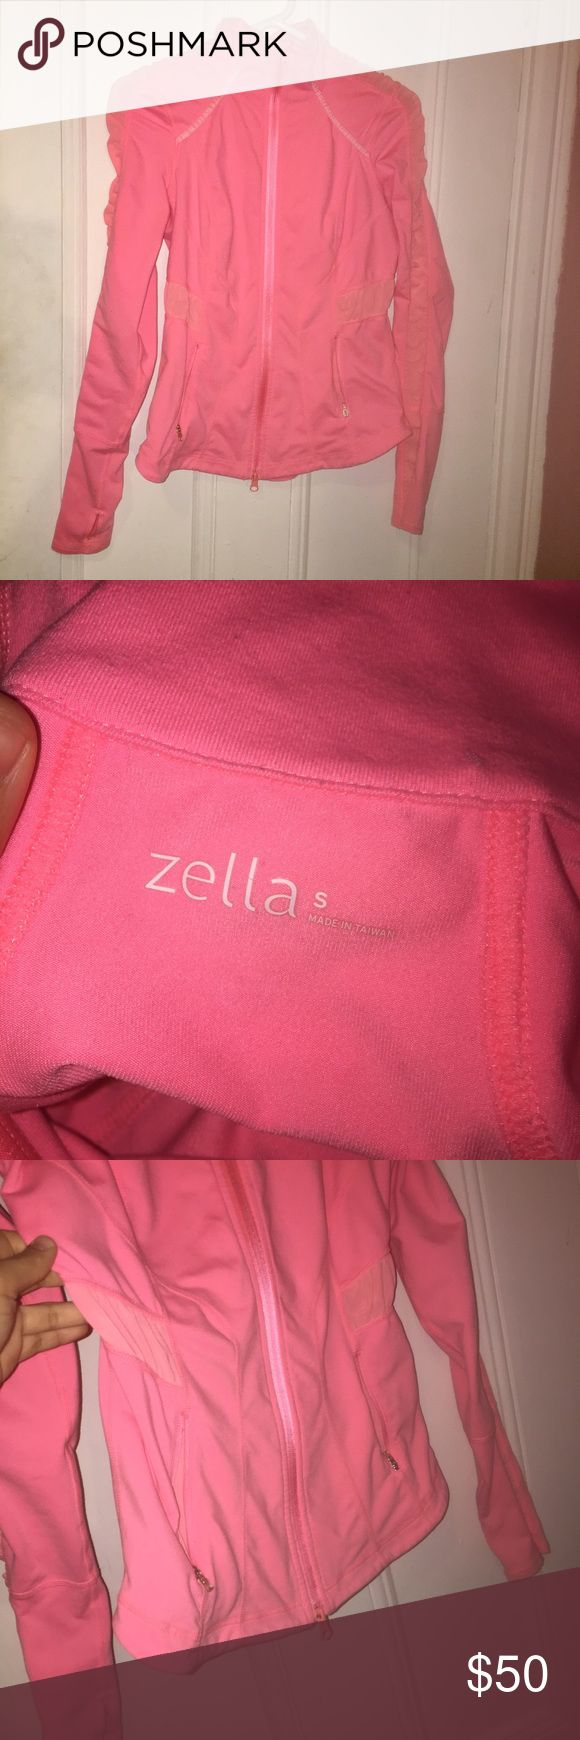 Zella hot pink zip up workout top 👍 Zella excellent condition hot pink zip up jacket with mesh and ruching details. Offers welcome!!! Zella Tops Tees - Long Sleeve